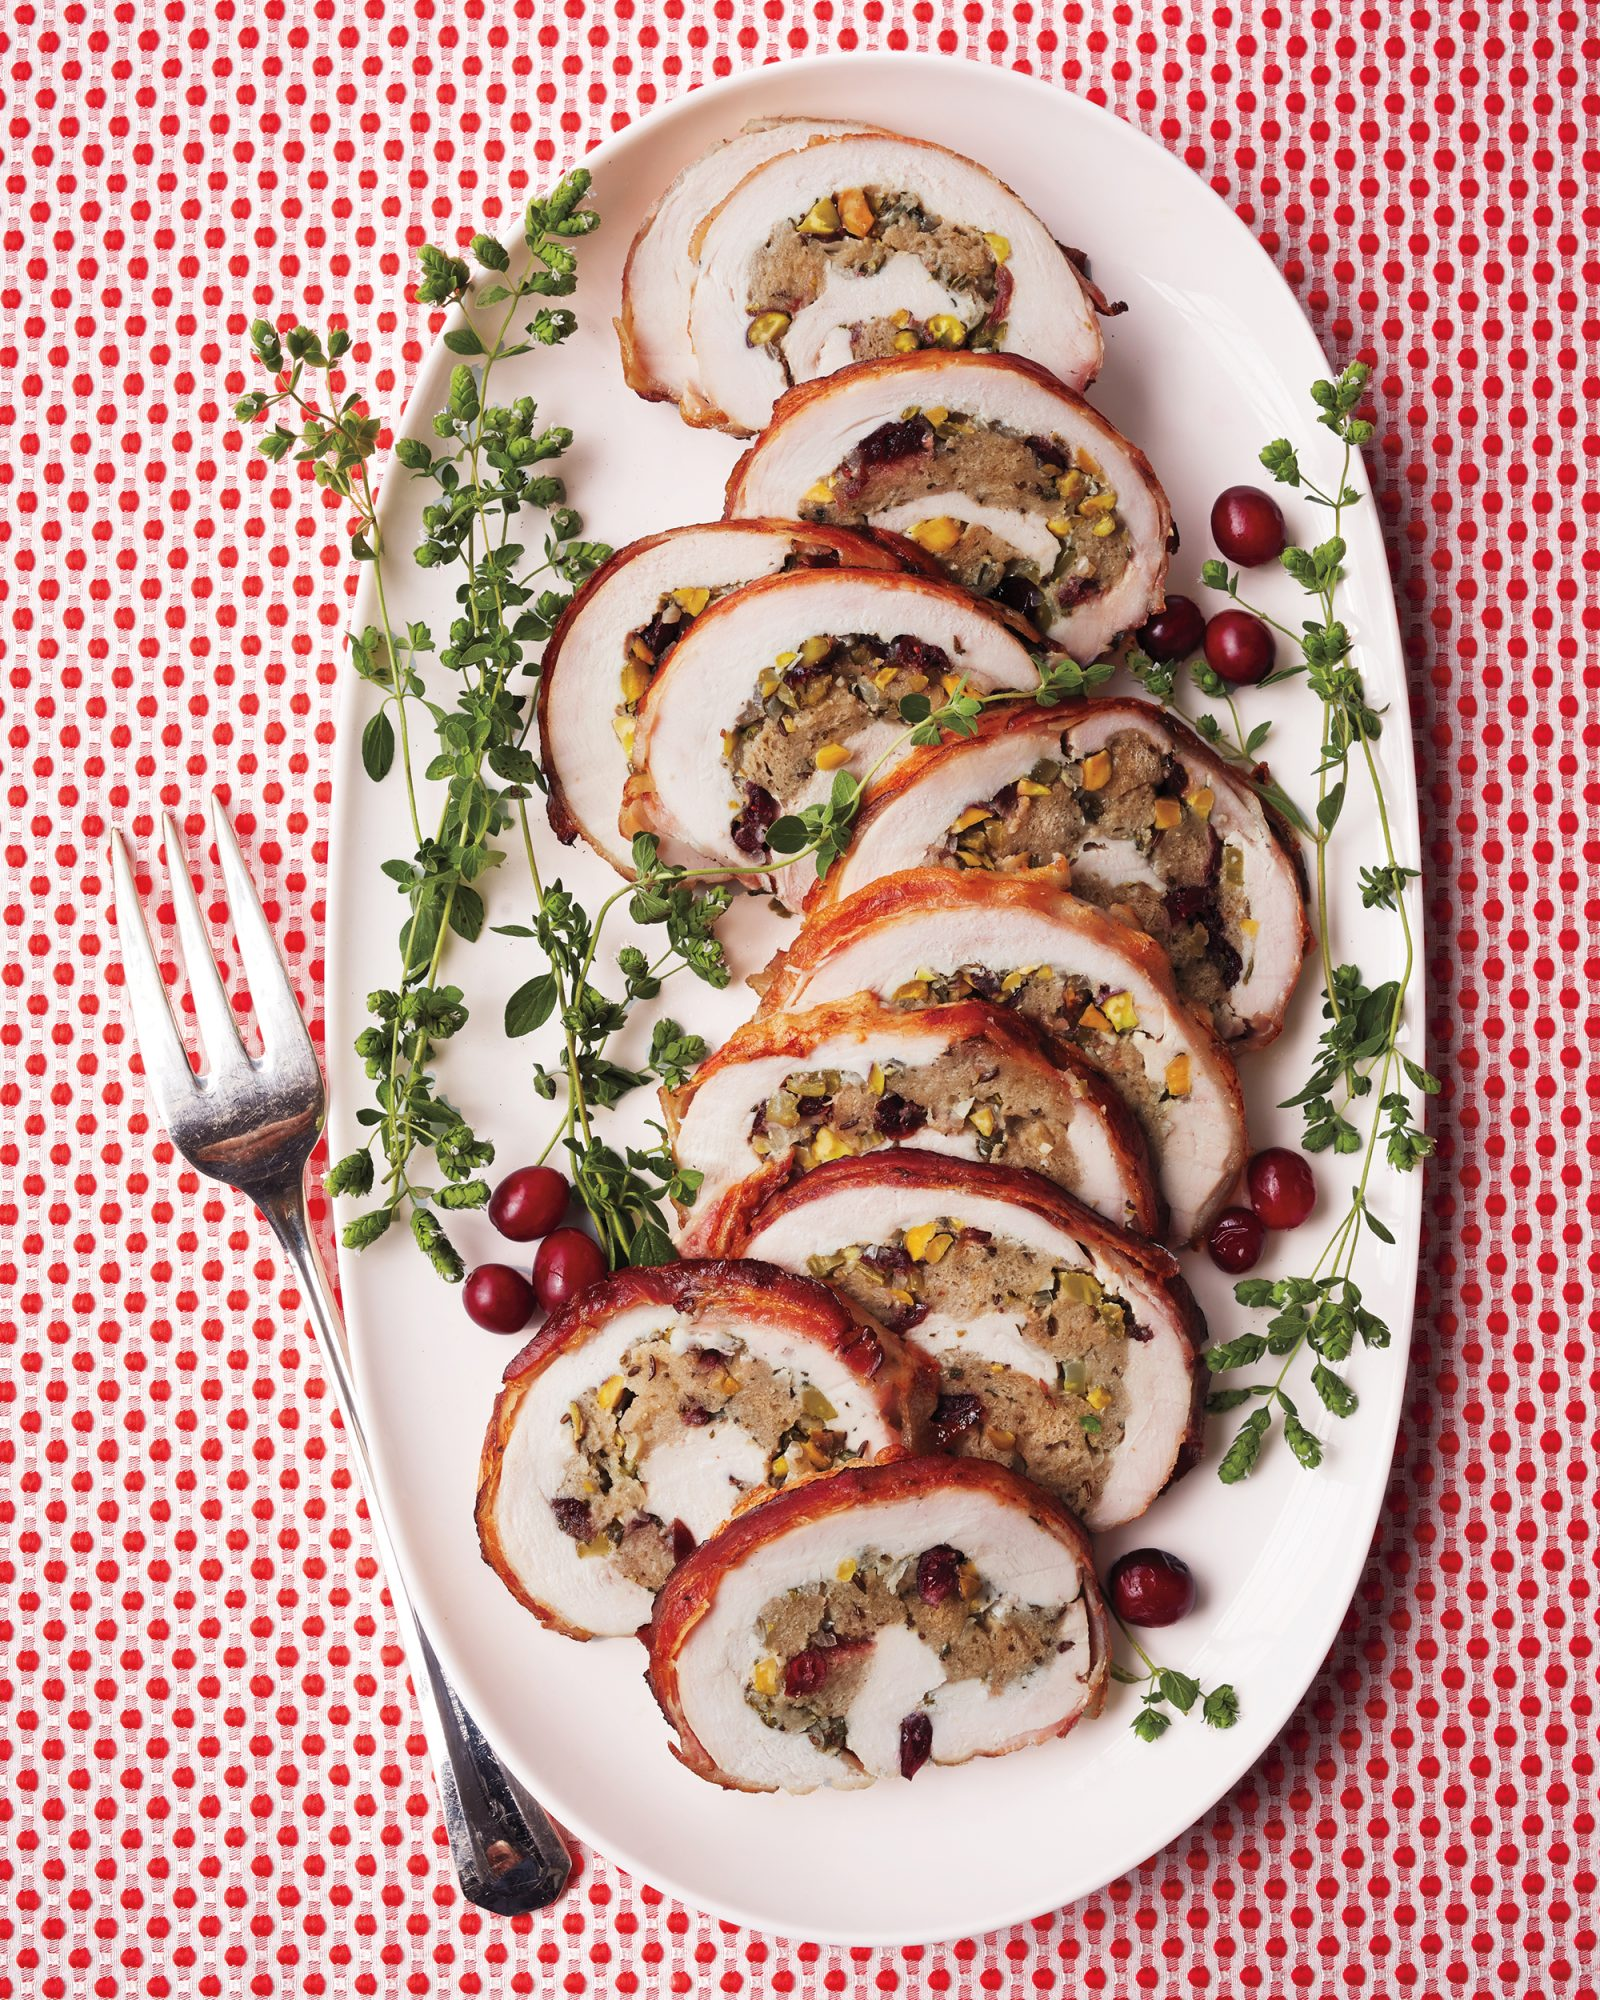 12 Festive Family Menus to Get You Through This Holiday Season